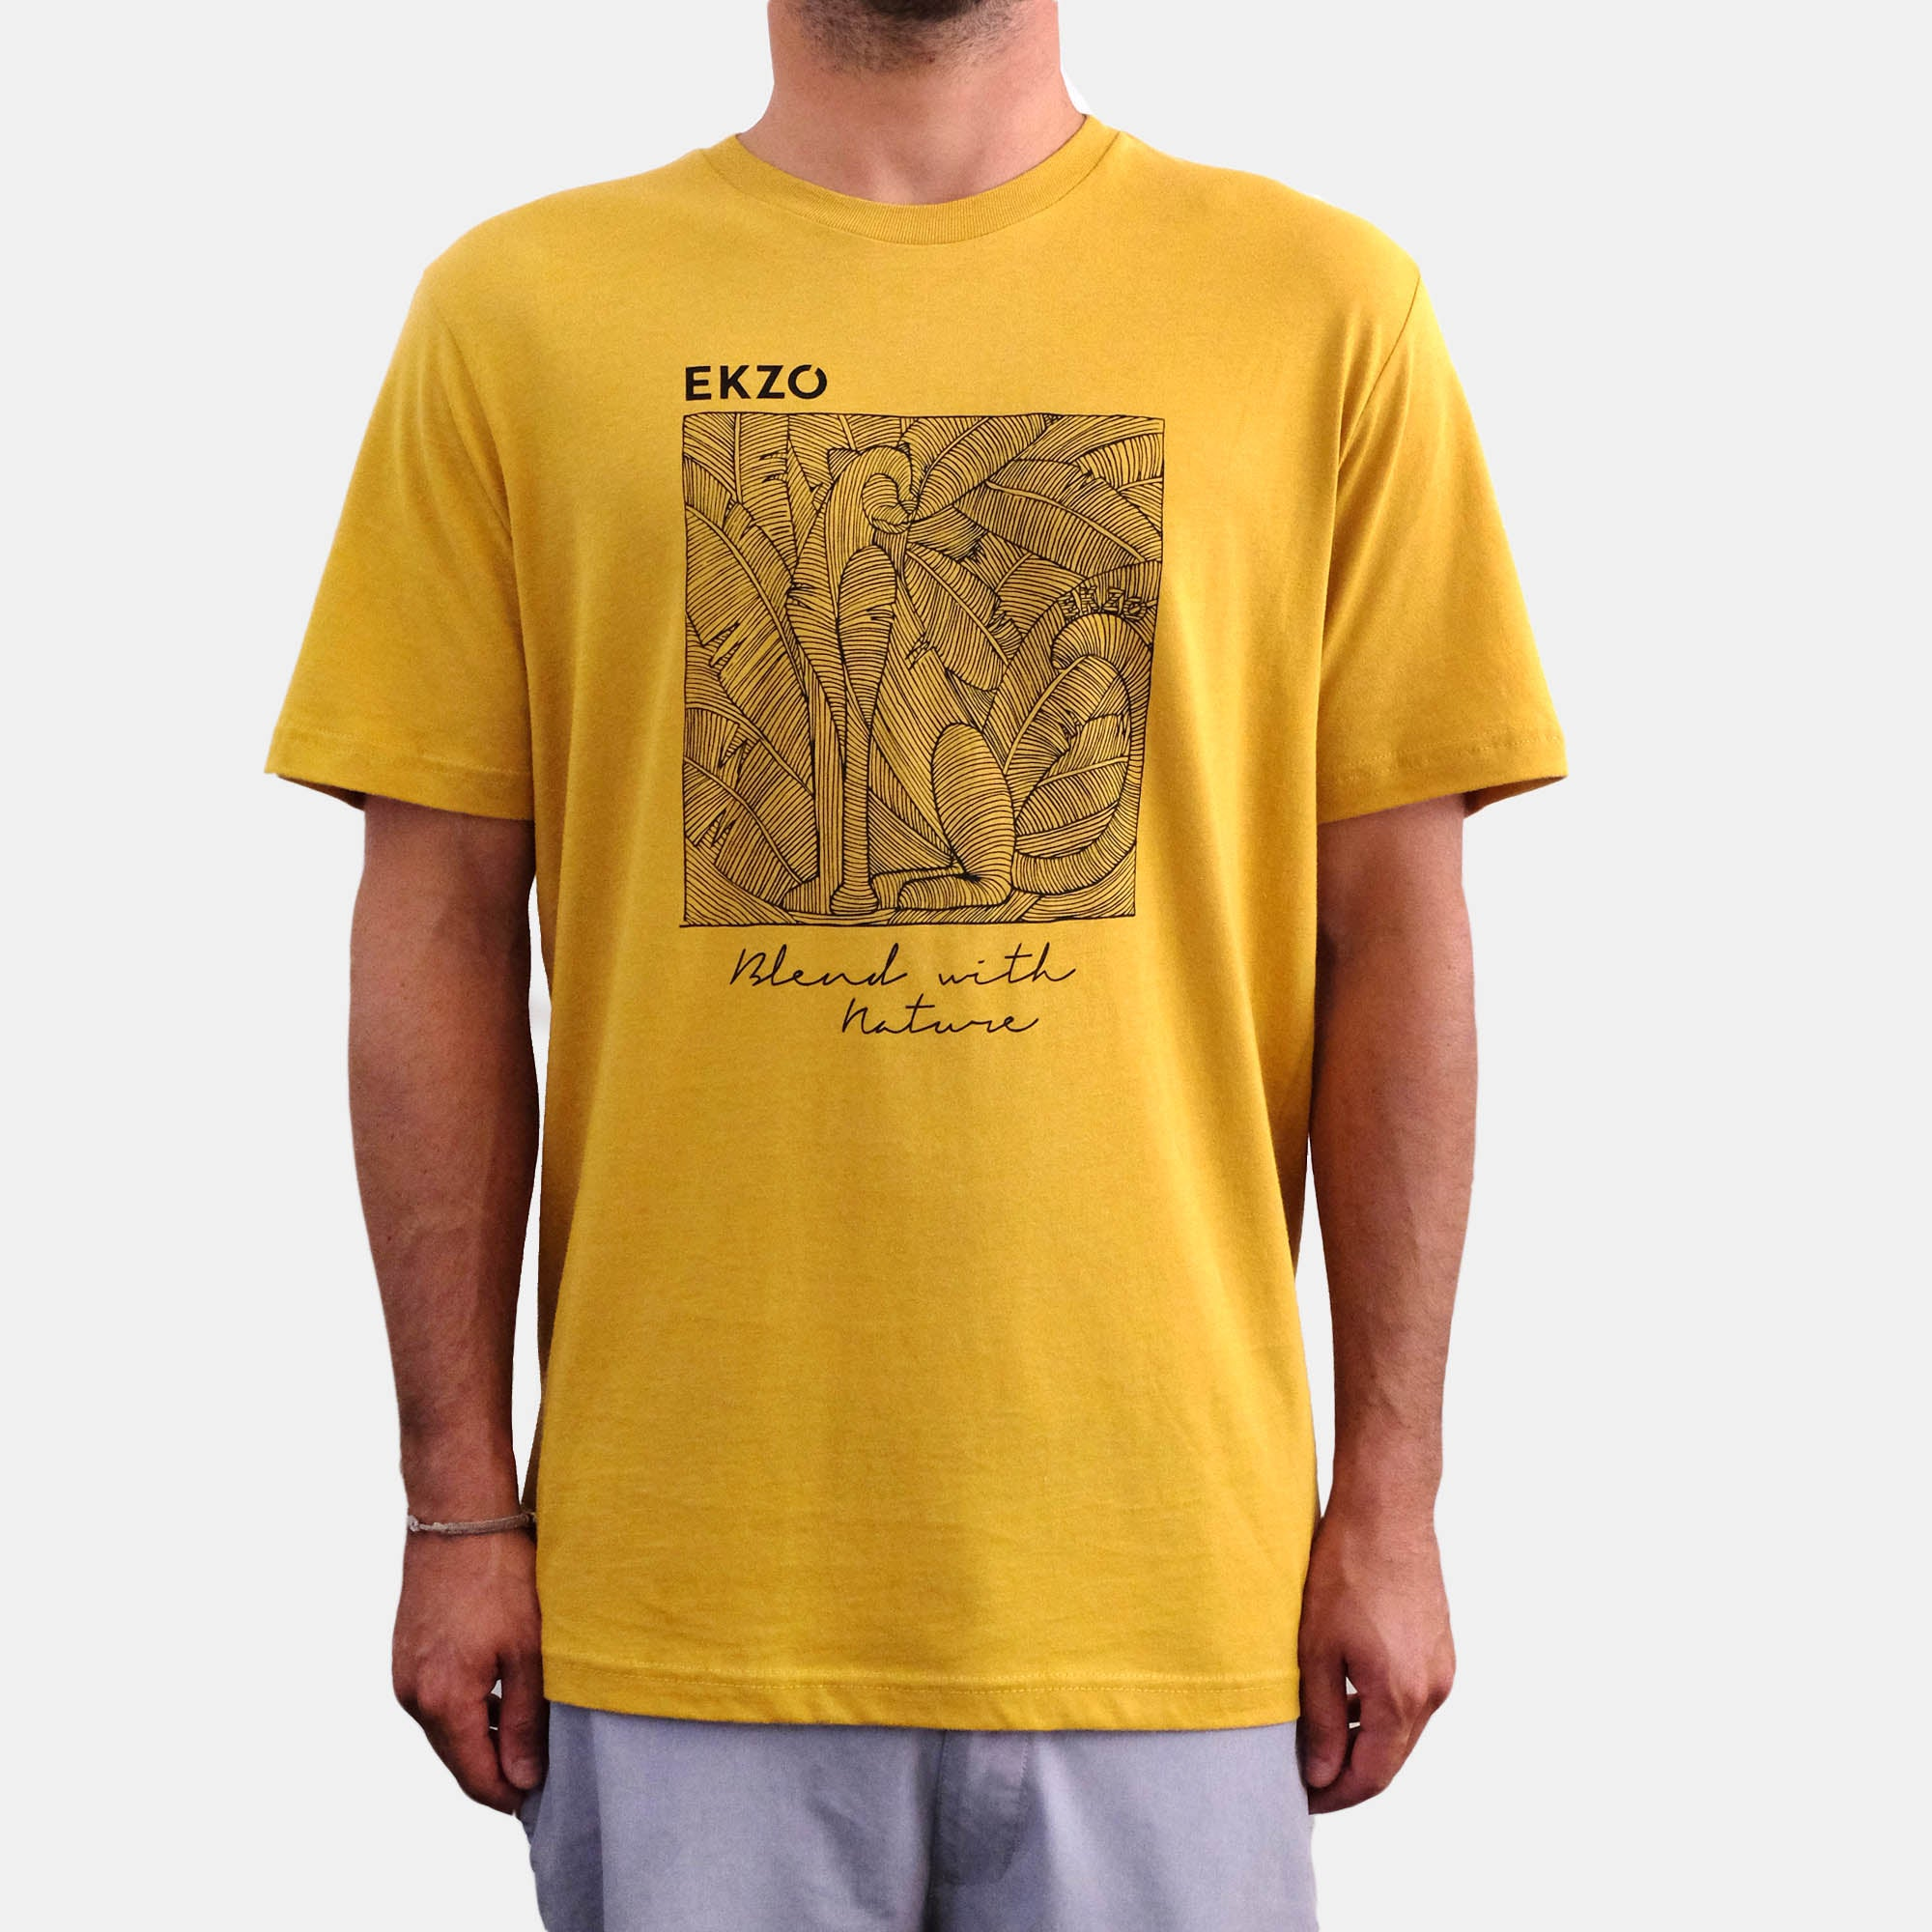 Blend with Nature T-shirt Mustard - EKZO